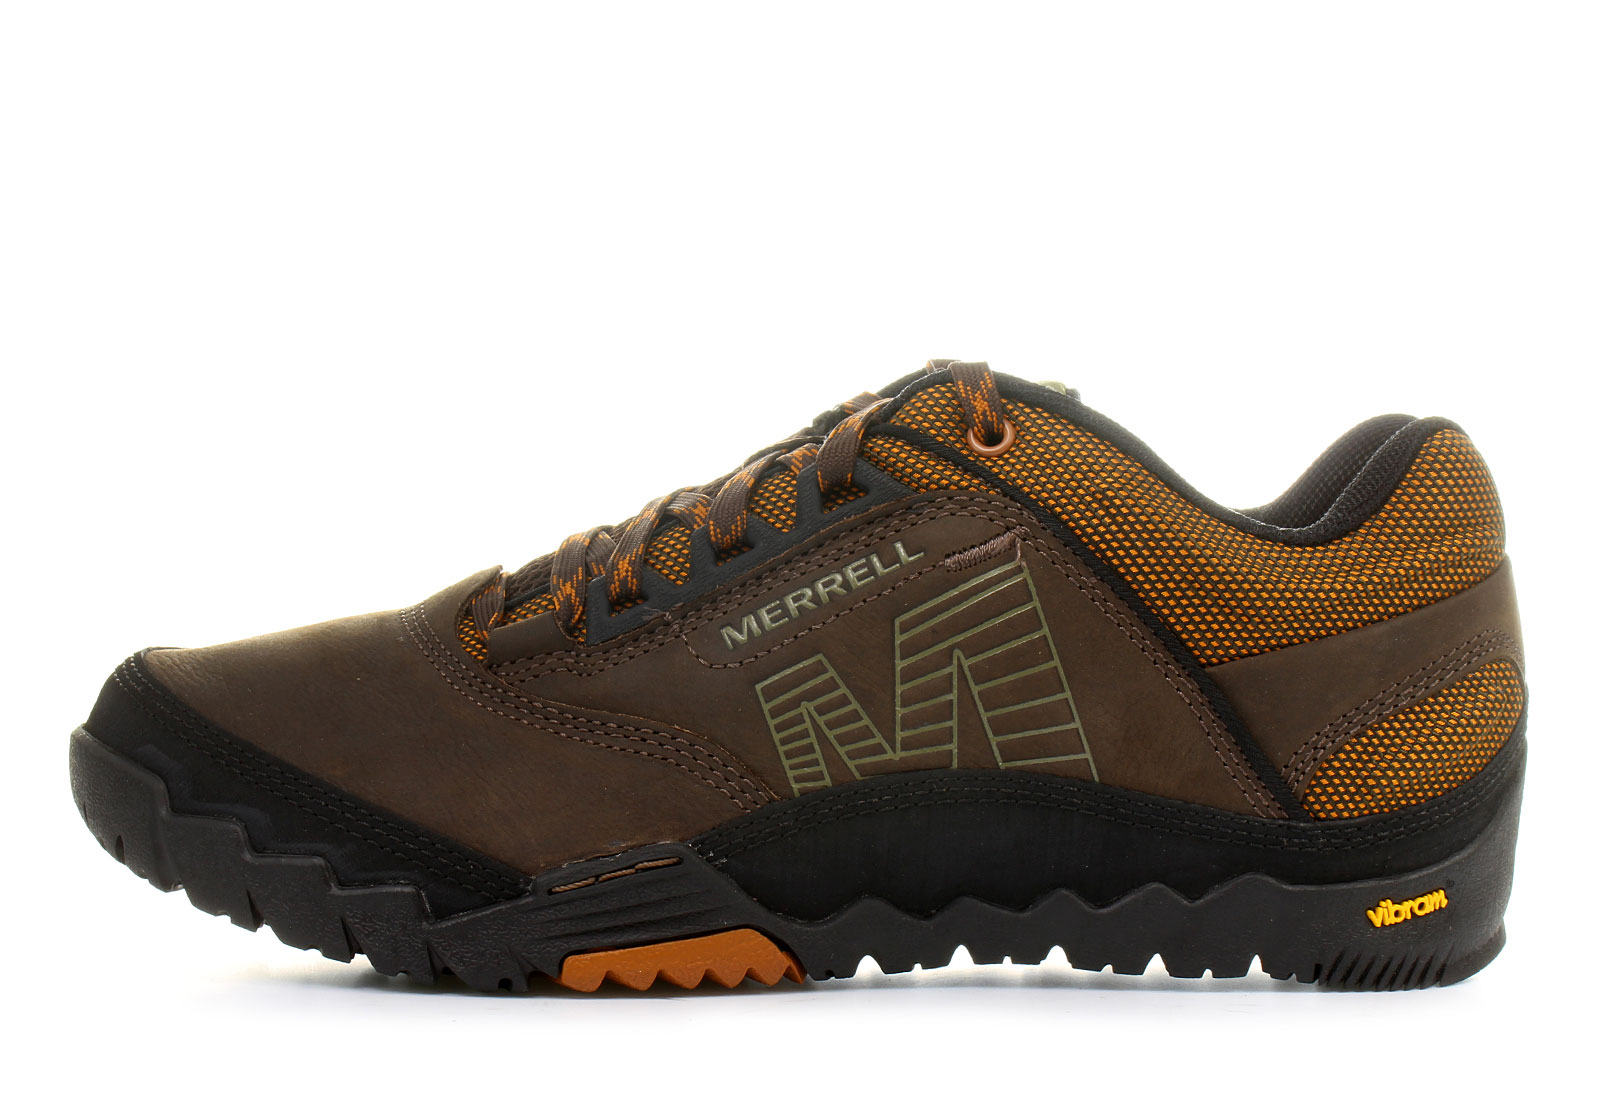 Merrell Shoes, Boots & Sandals | Nordstrom,+ followers on Twitter.